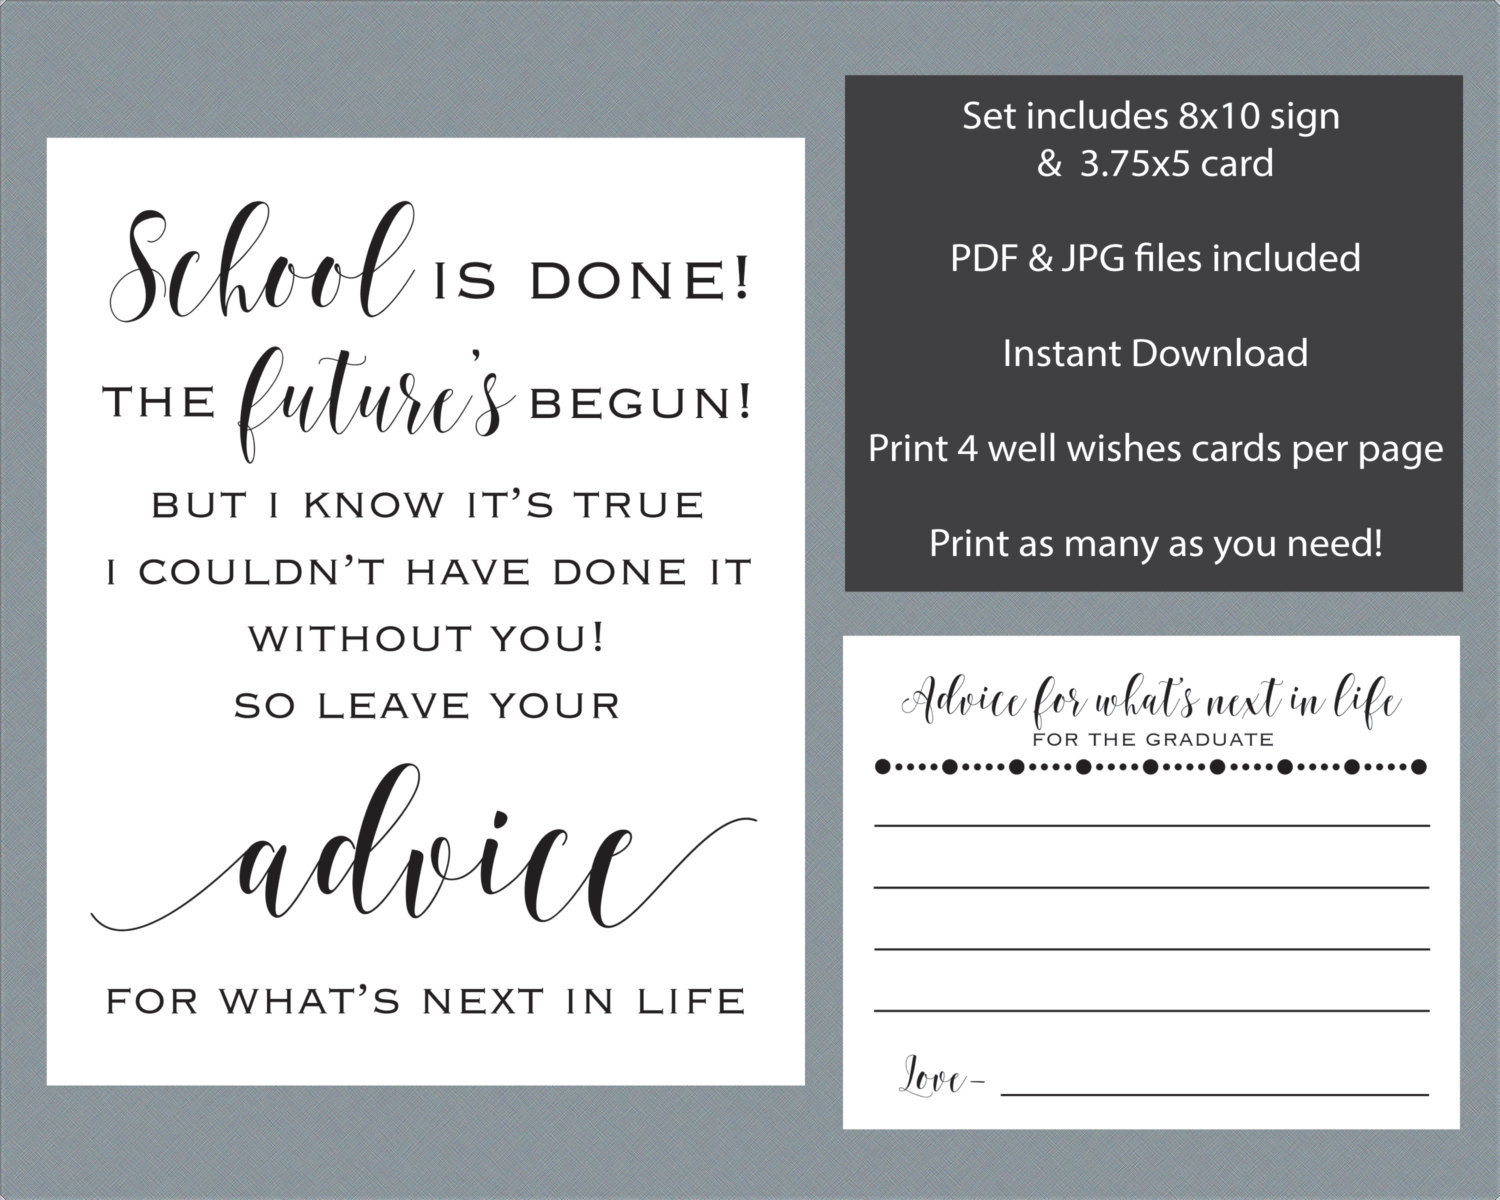 Graduation Wishes Advice Cards Template - 28 Images - Advice Cards - Free Printable Graduation Advice Cards